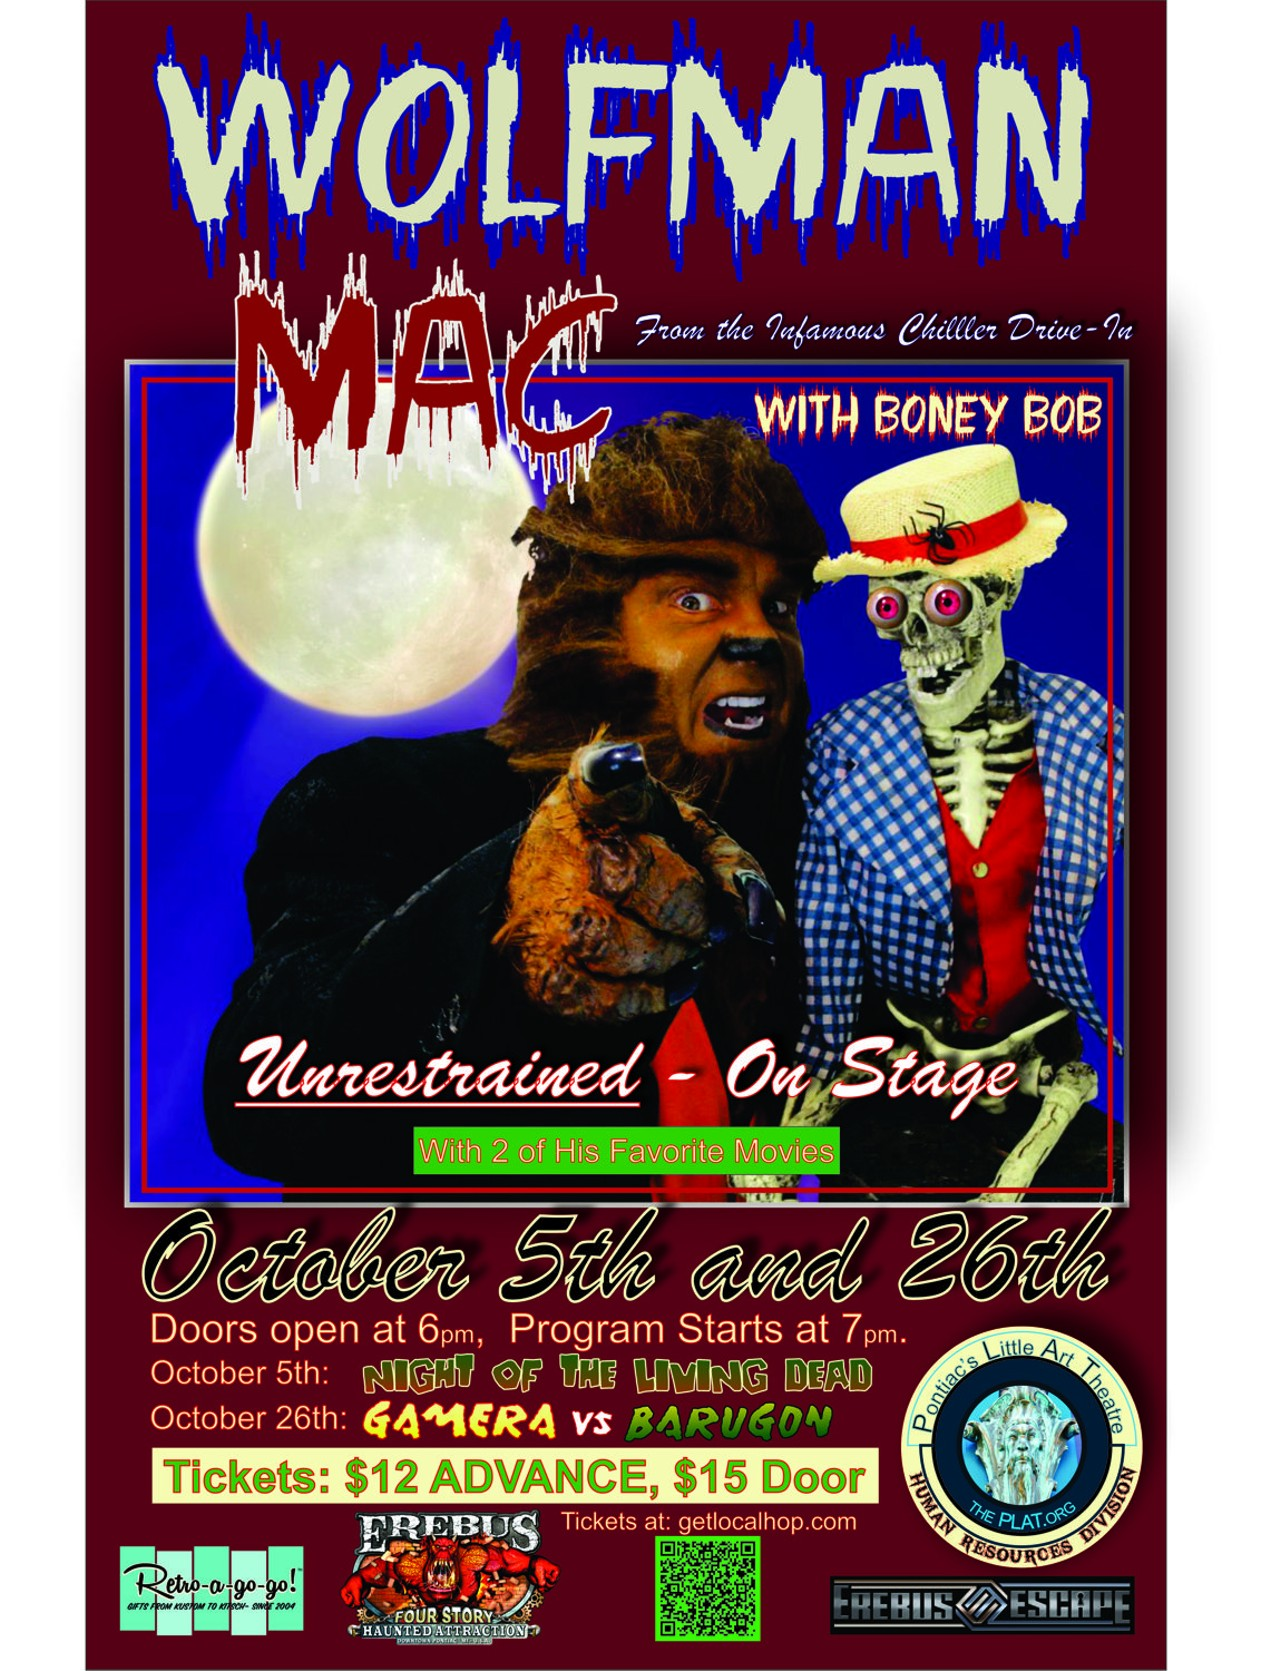 wolfman mac is back with scary movie night!   performance, halloween